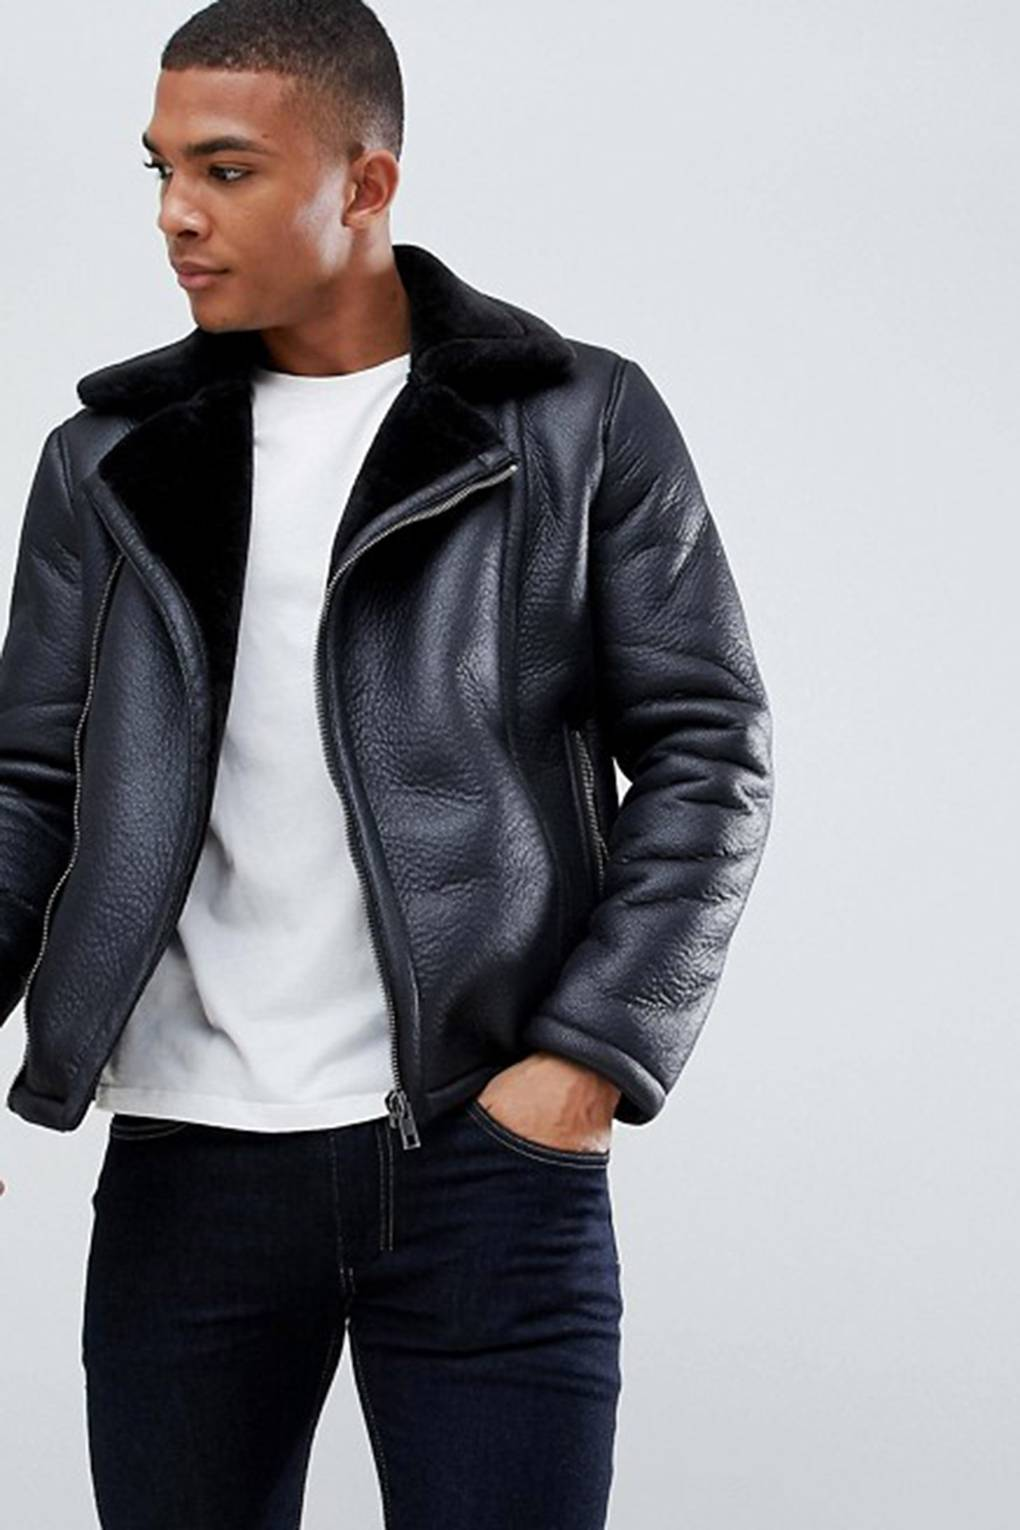 Men S Leather Jackets How To Look Good In Leather British Gq